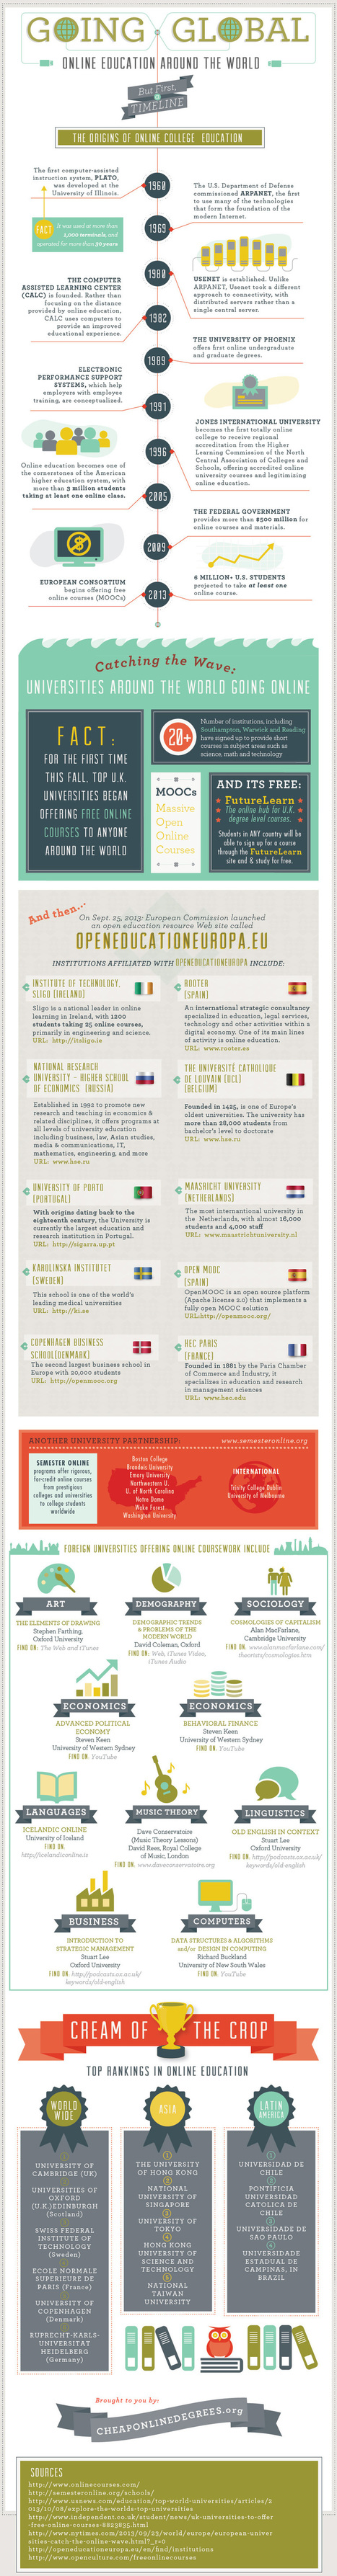 Trends | Infographic: Online Education Around the World | Distance Ed Archive | Scoop.it